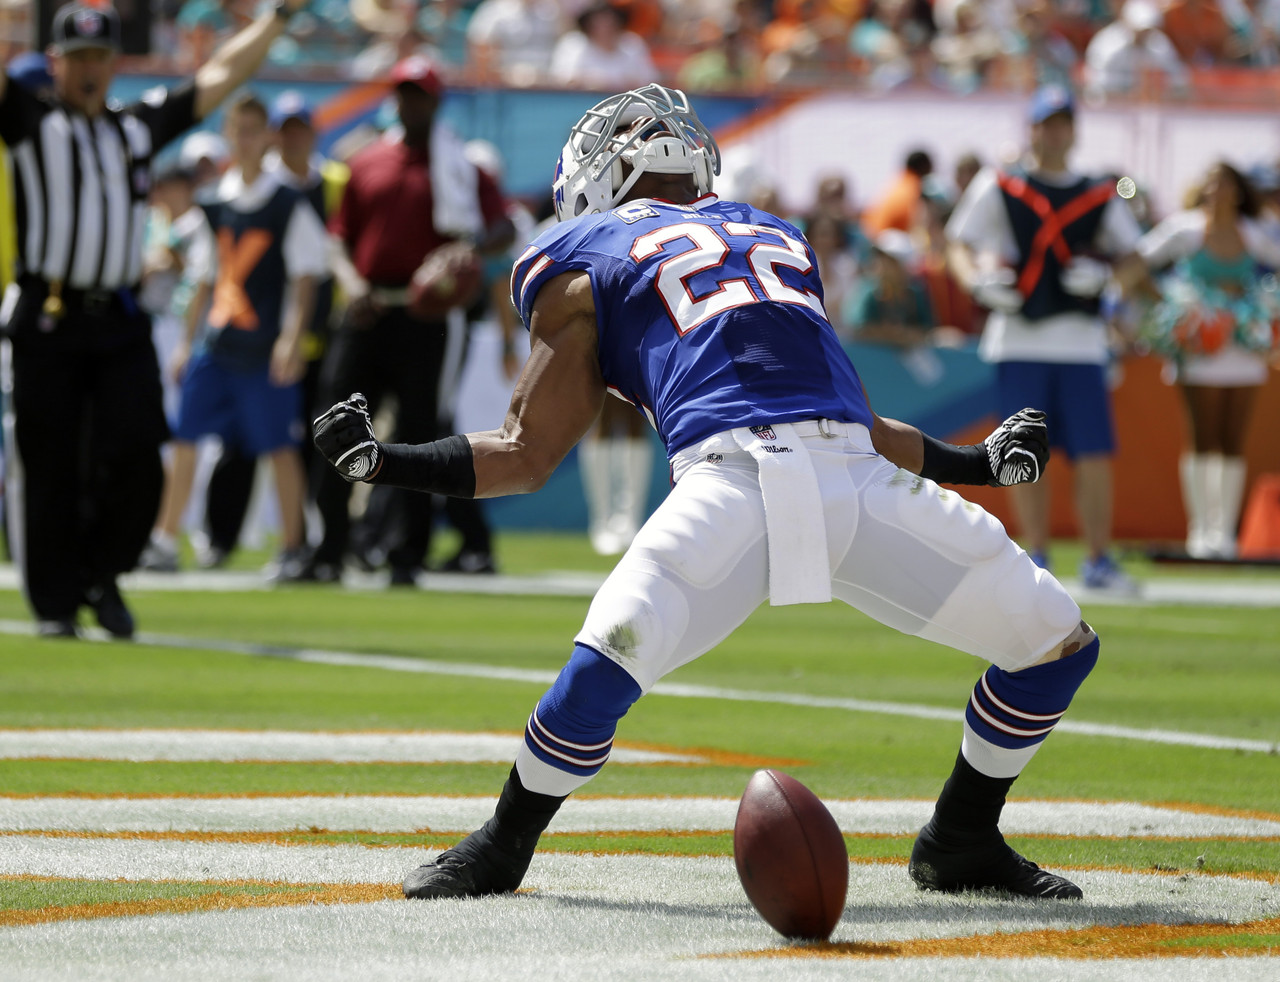 Fantasy Football Blog - Fantasy Football: Hot Week 9 Free Agents